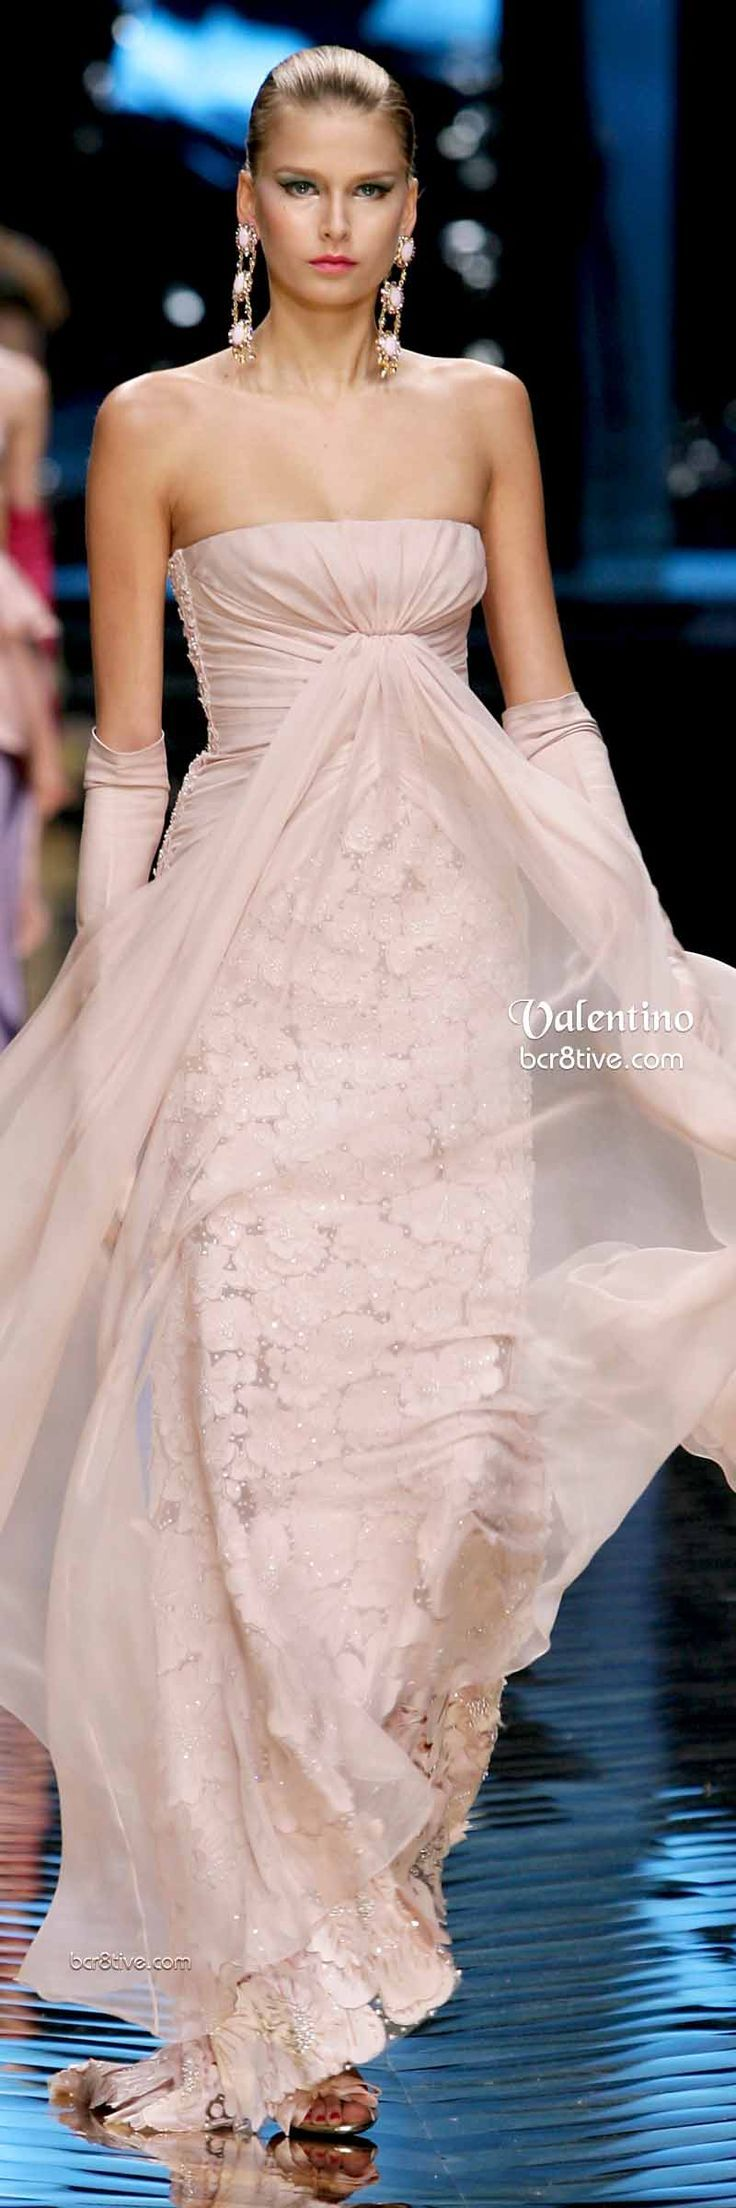 best exciting fashion images on pinterest evening gowns dream